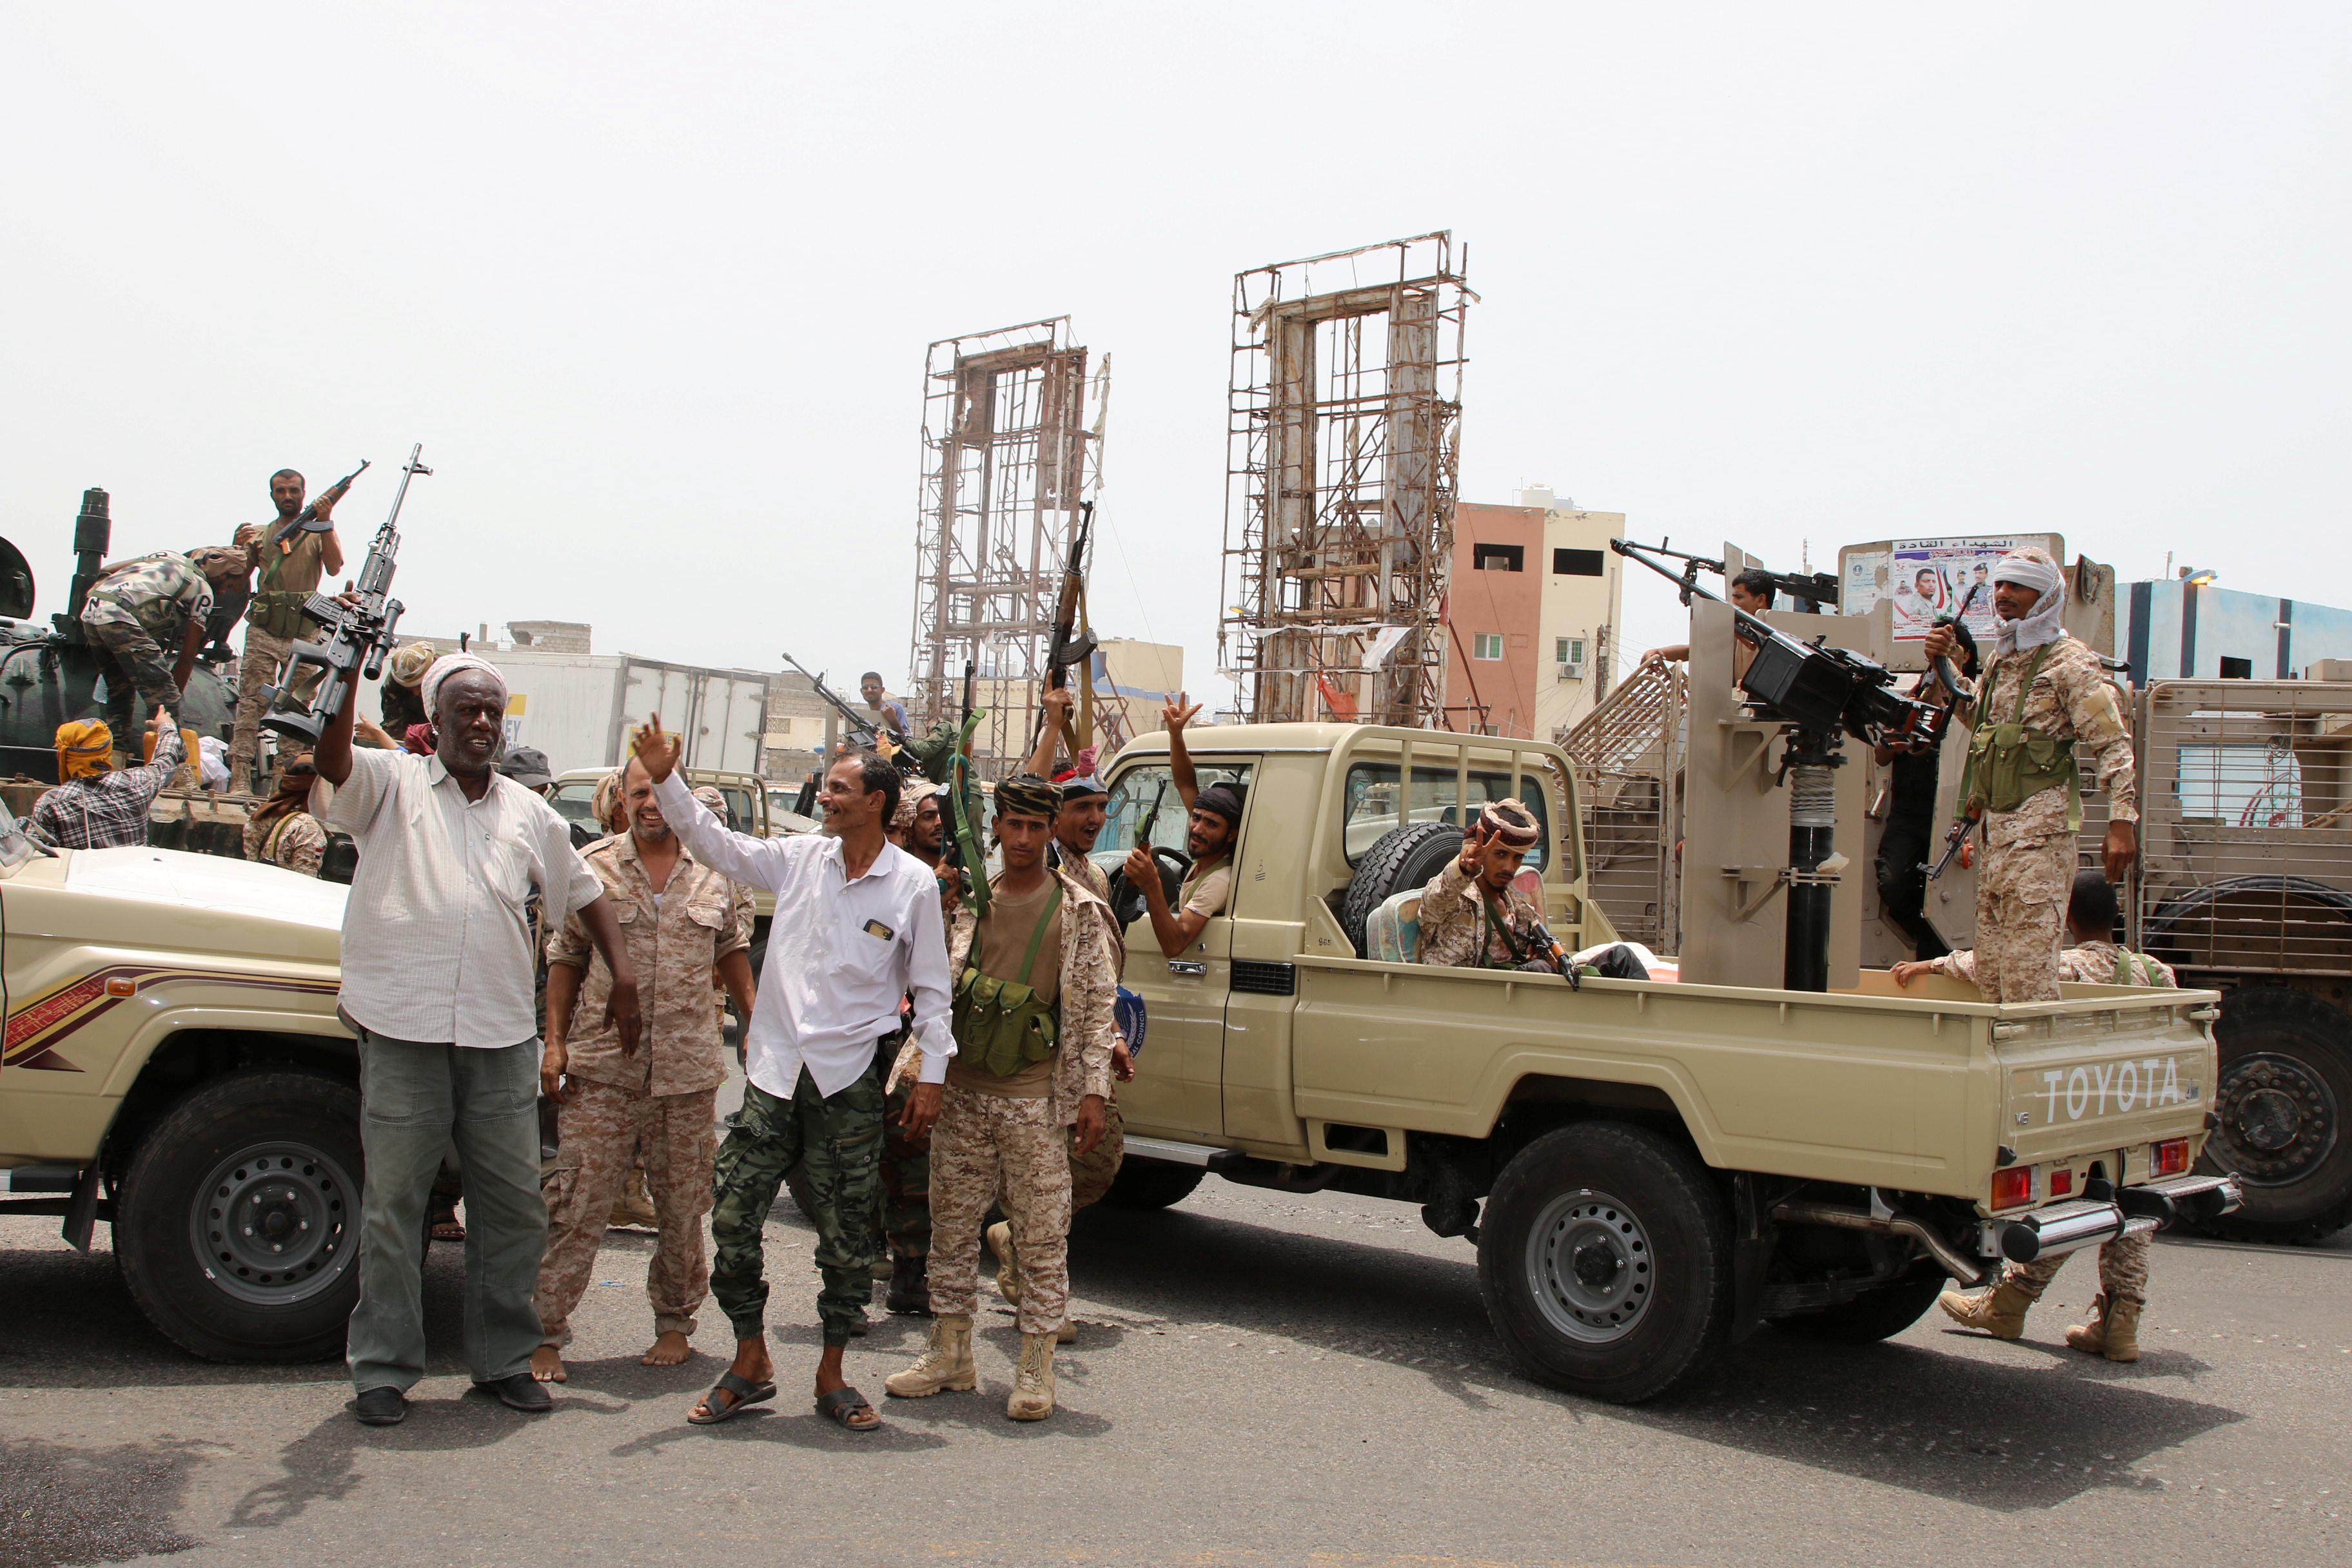 Yemen's pro-government coalition fractures as separatists grab...